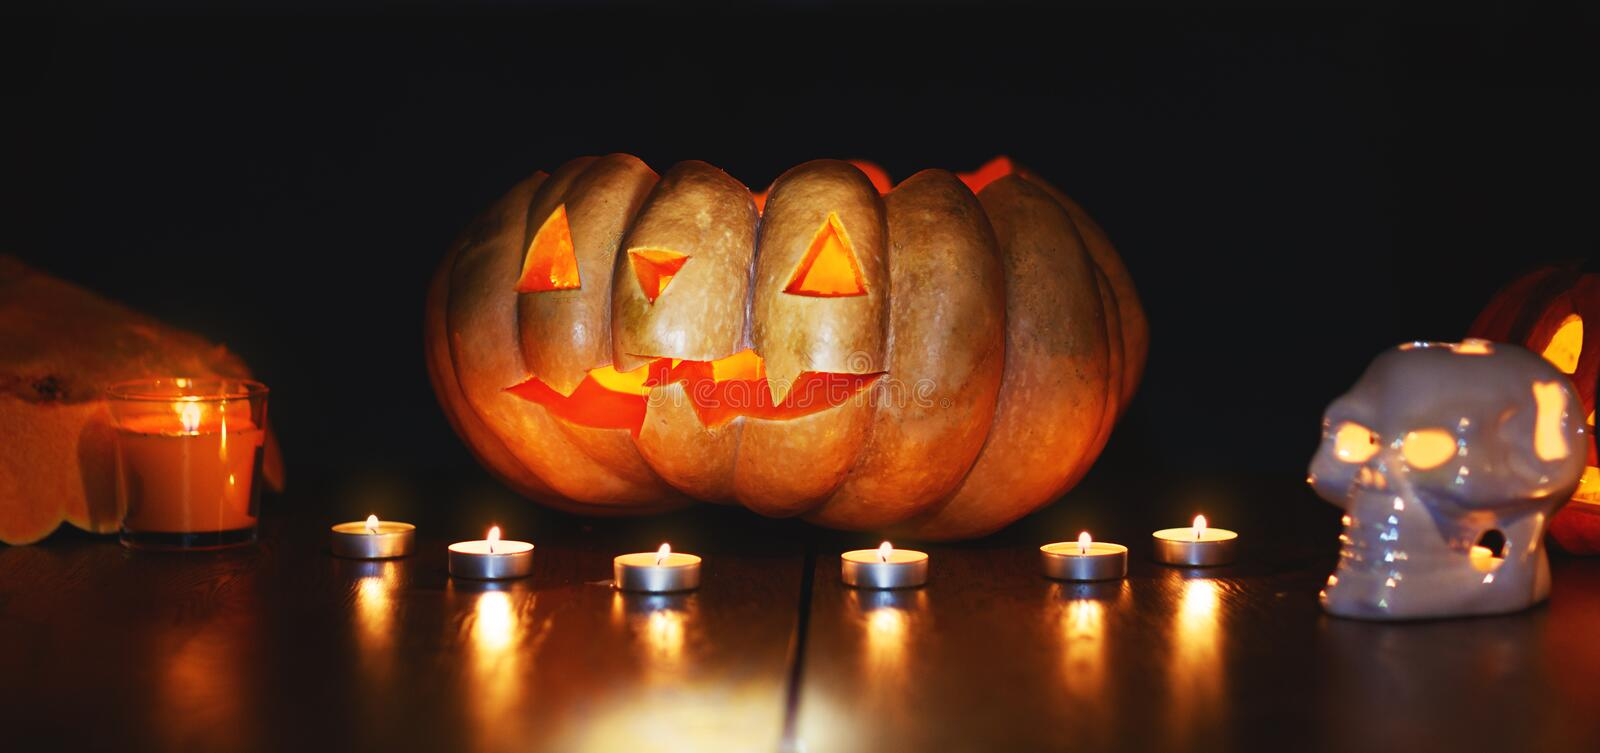 Happy Halloween! a composition of pumpkins and candles in dark. Happy Halloween! a composition of pumpkins and candles in the dark royalty free stock images